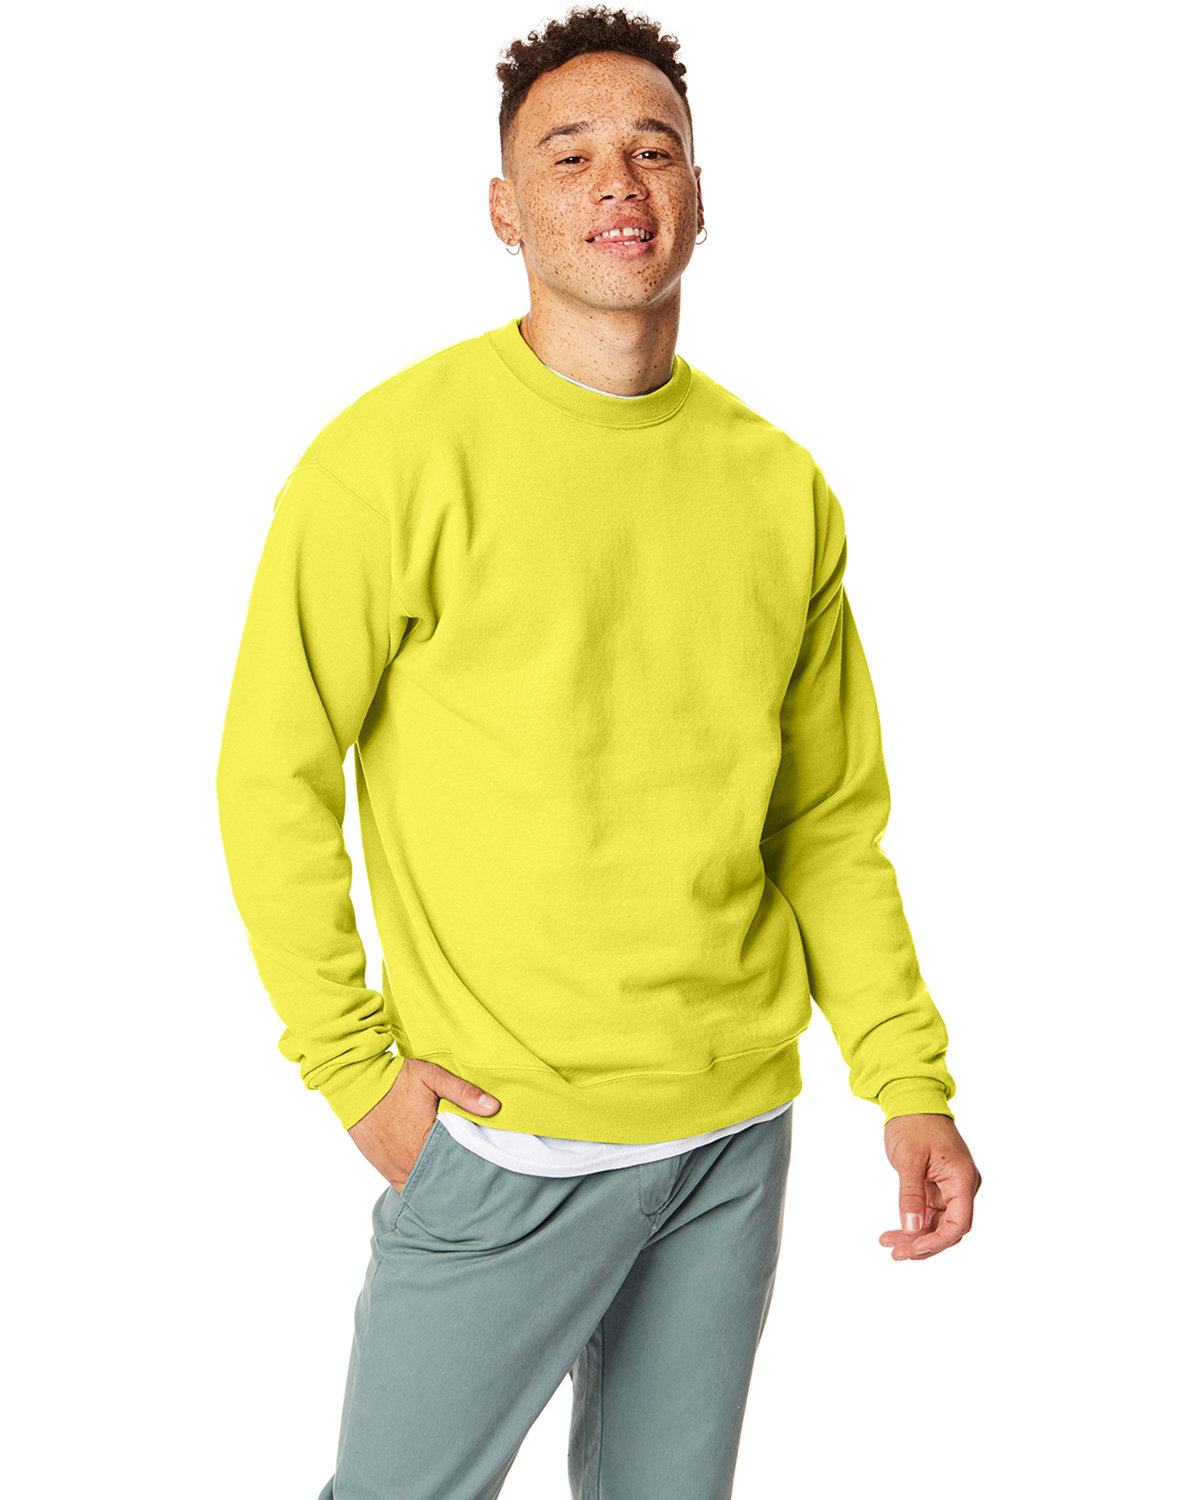 Hanes Unisex 7.8 oz., Ecosmart® 50/50 Crewneck Sweatshirt SAFETY GREEN